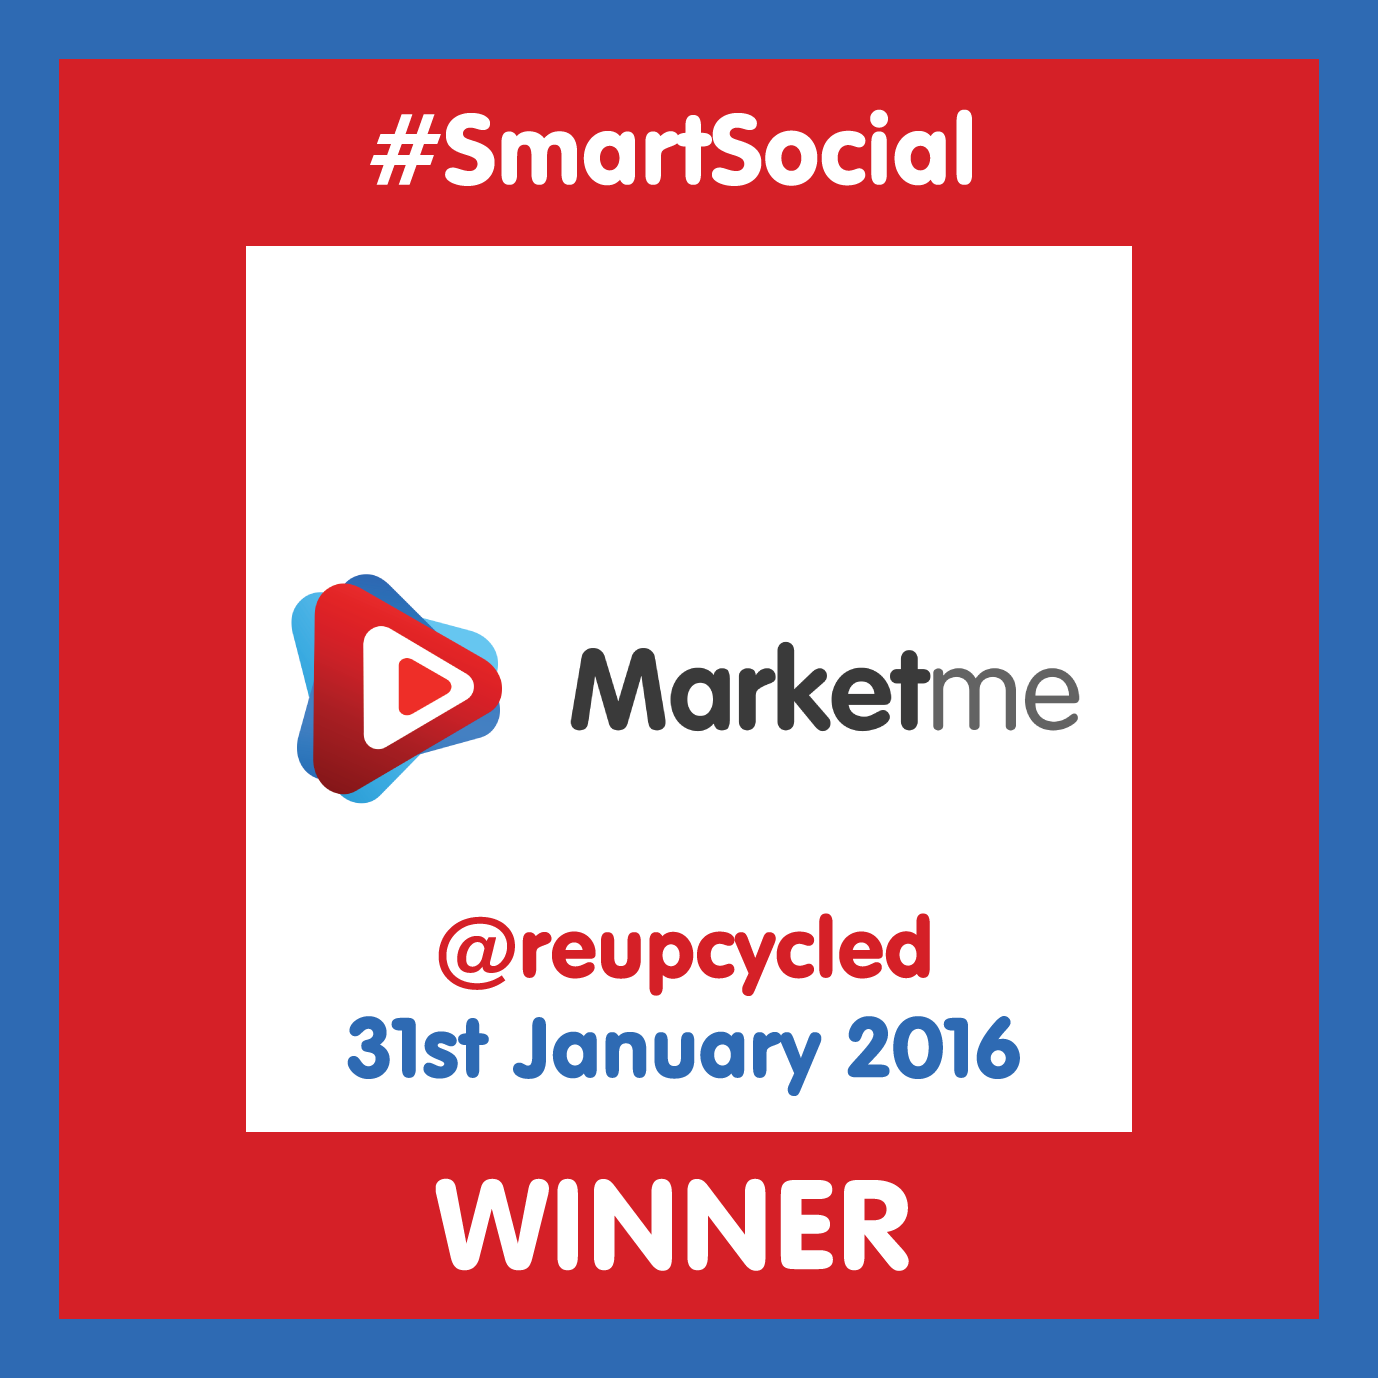 #SmartSocial WINNER Upcycled Creative